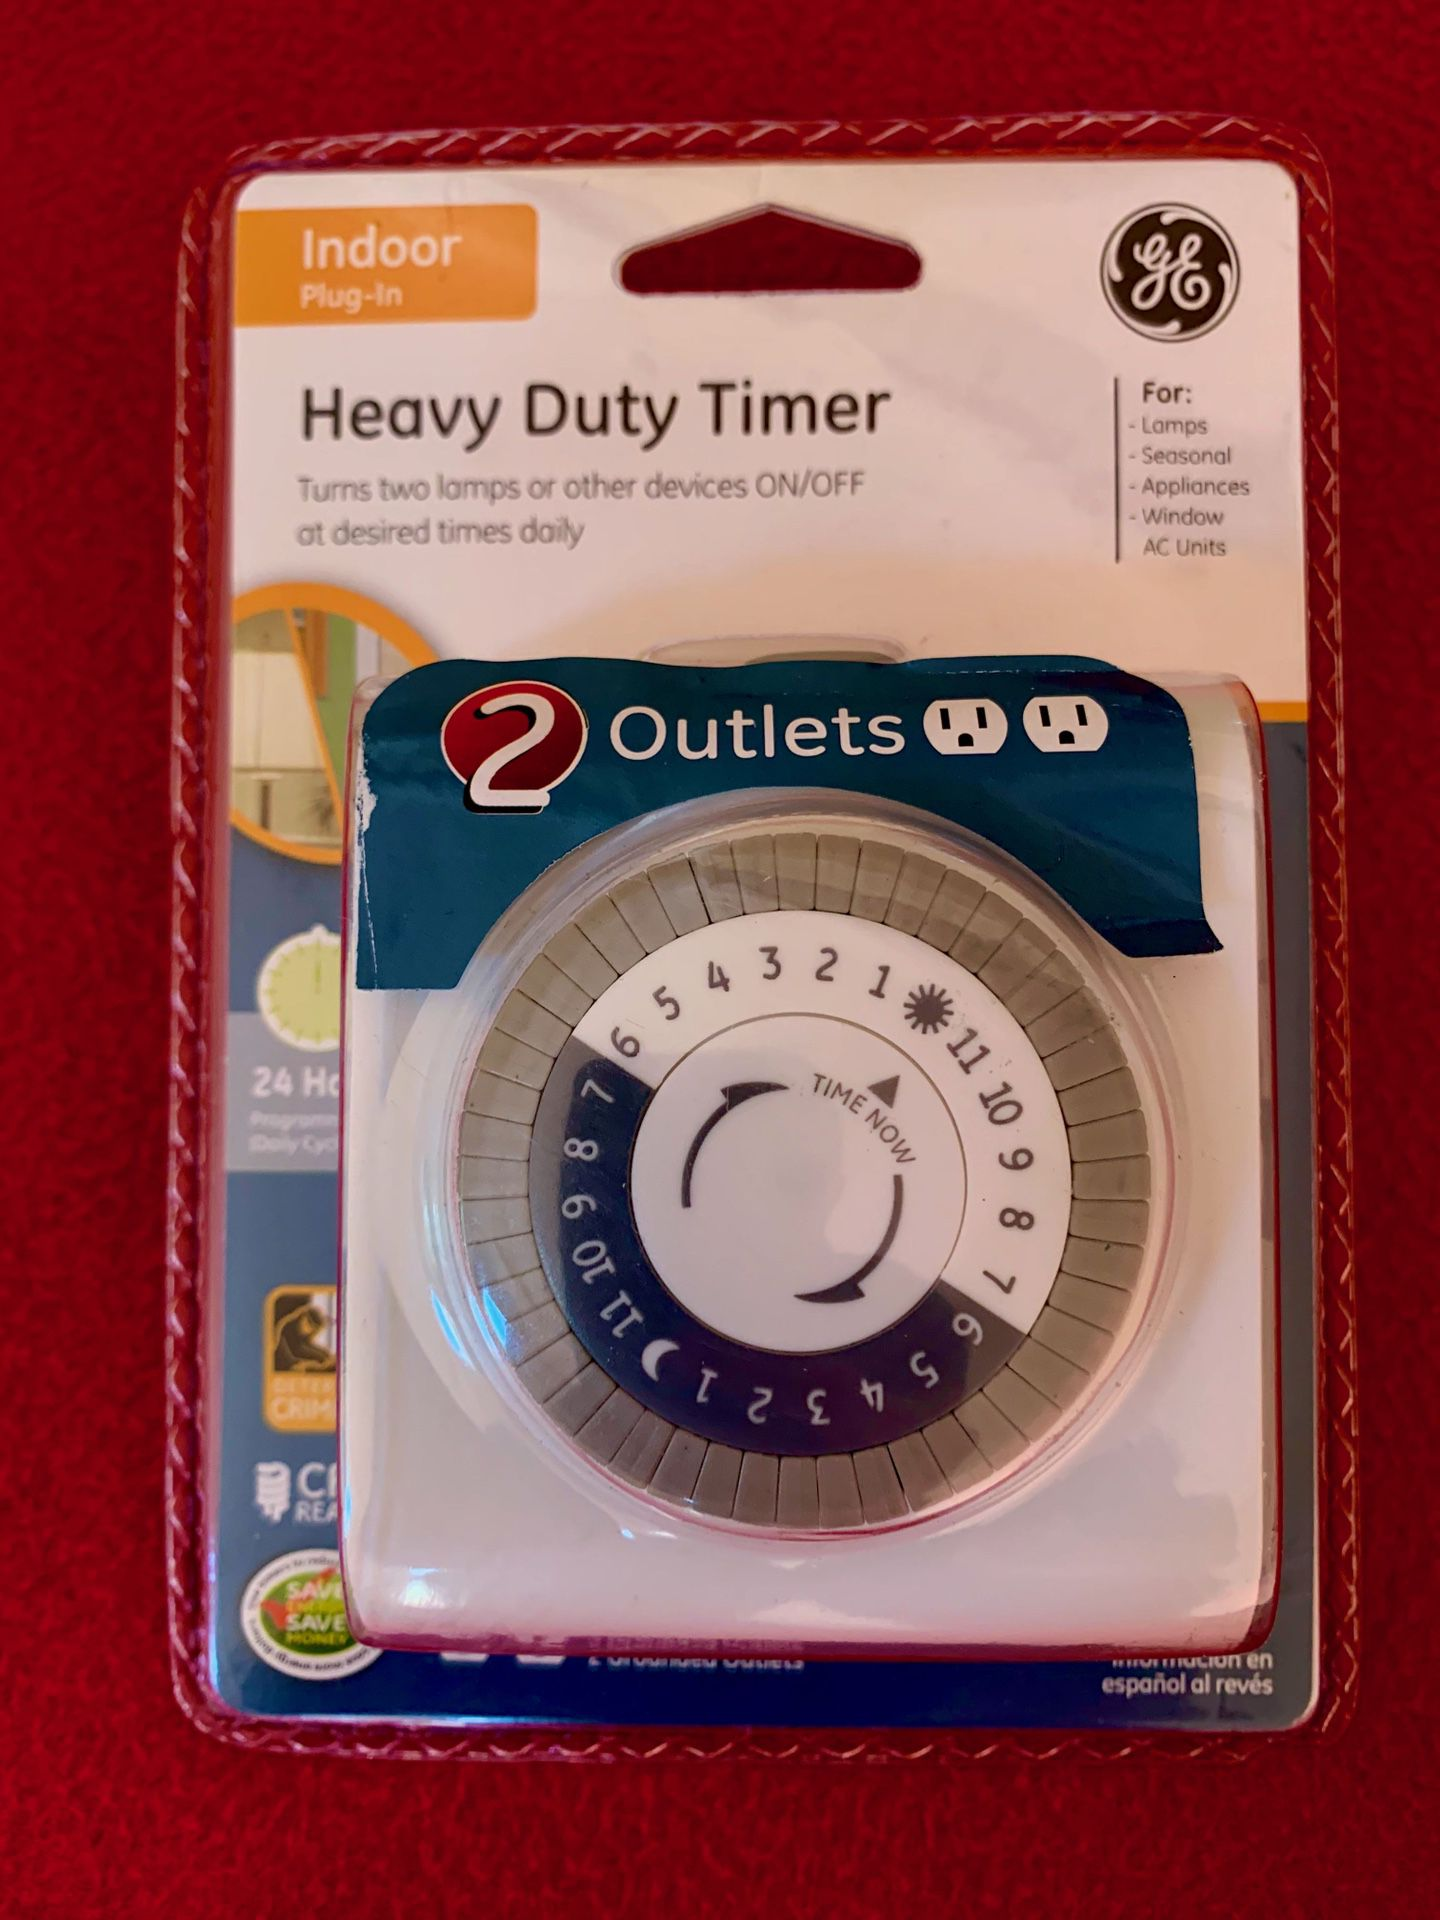 Two brand new GE heavy duty timers; each control 2 appliances